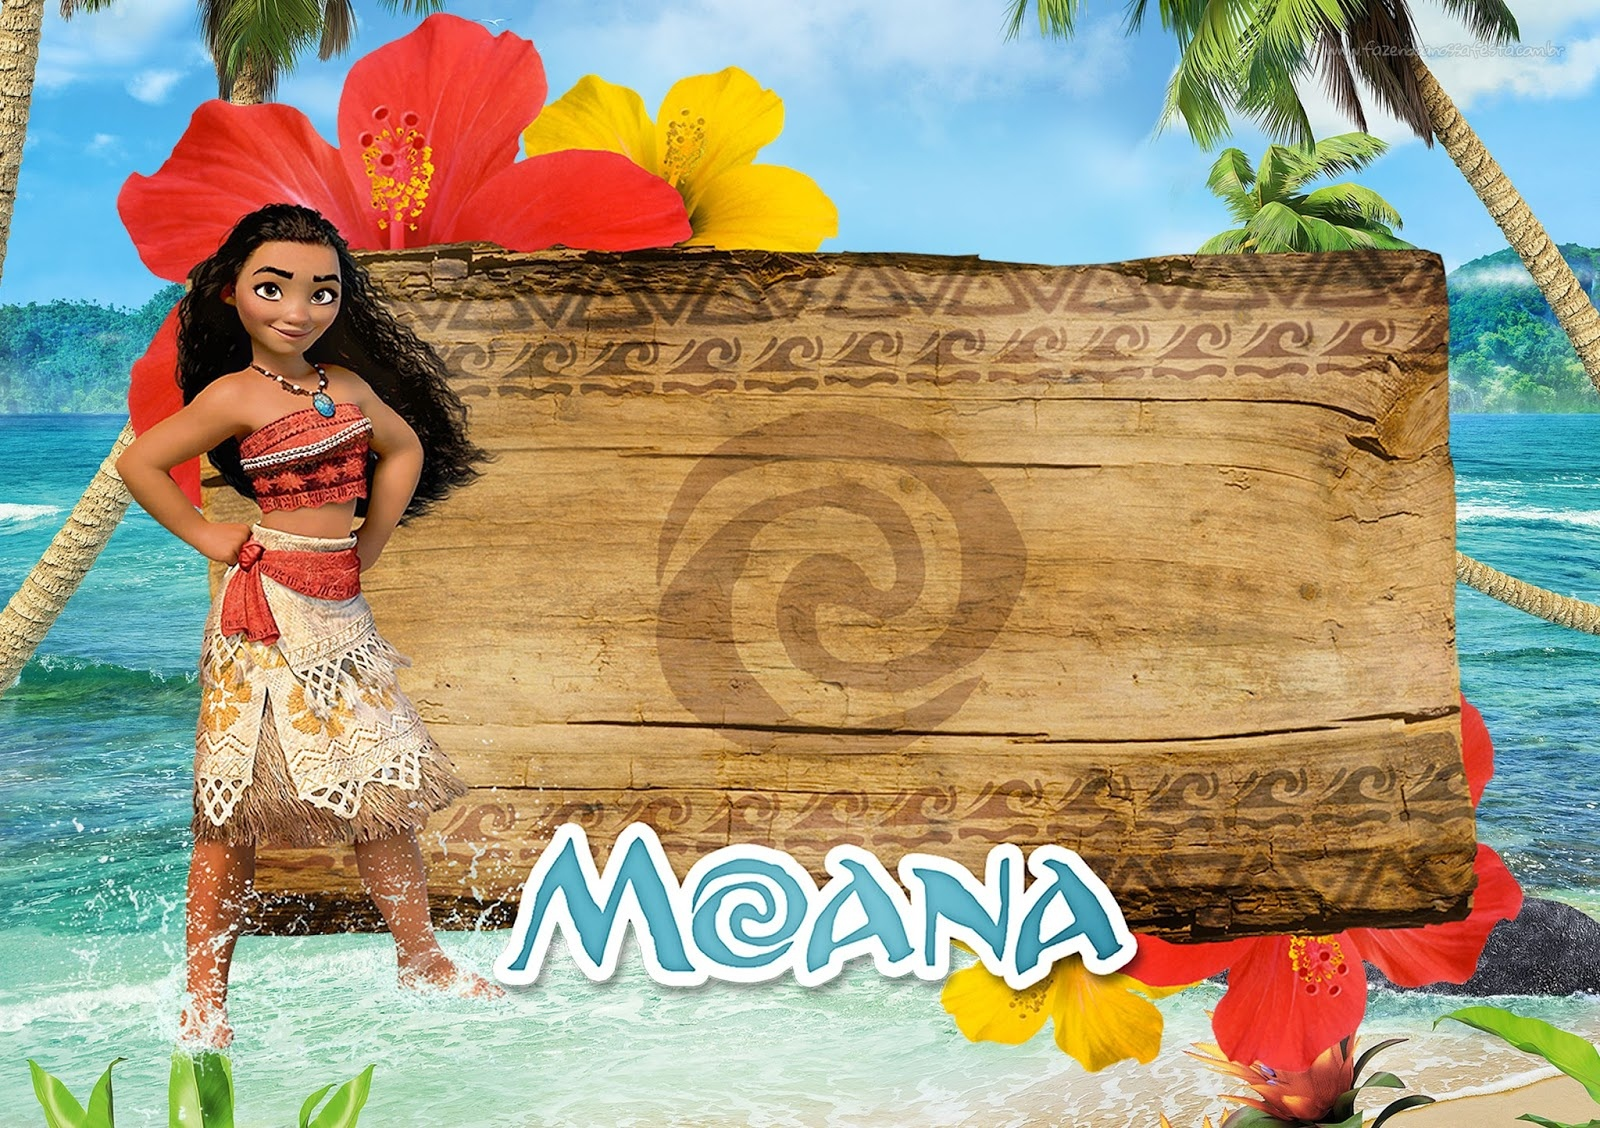 Moana: Free Printable Invitations. - Oh My Fiesta! In English - Free Moana Printable Invitations